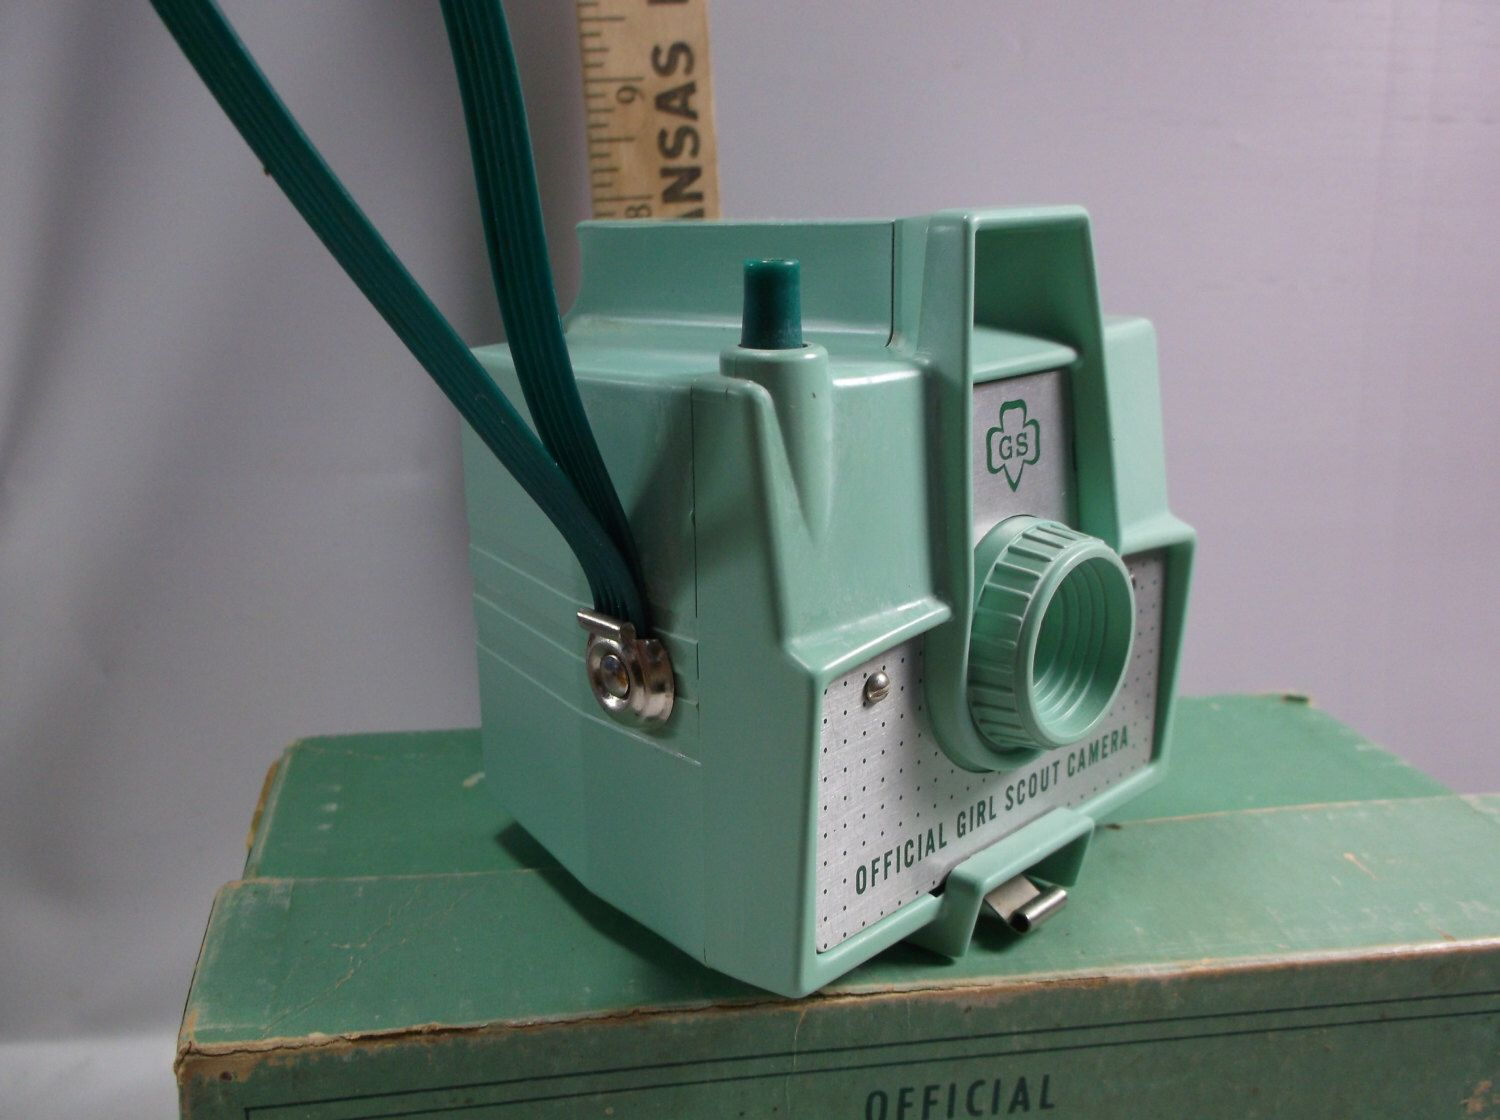 Decorative Camera Mint Green Vintage Imperial Official Girl Scout Camera  With Box Takes 620 film Not Tested.epsteam by retroricks on Etsy https://www.etsy.com/listing/245272967/decorative-camera-mint-green-vintage